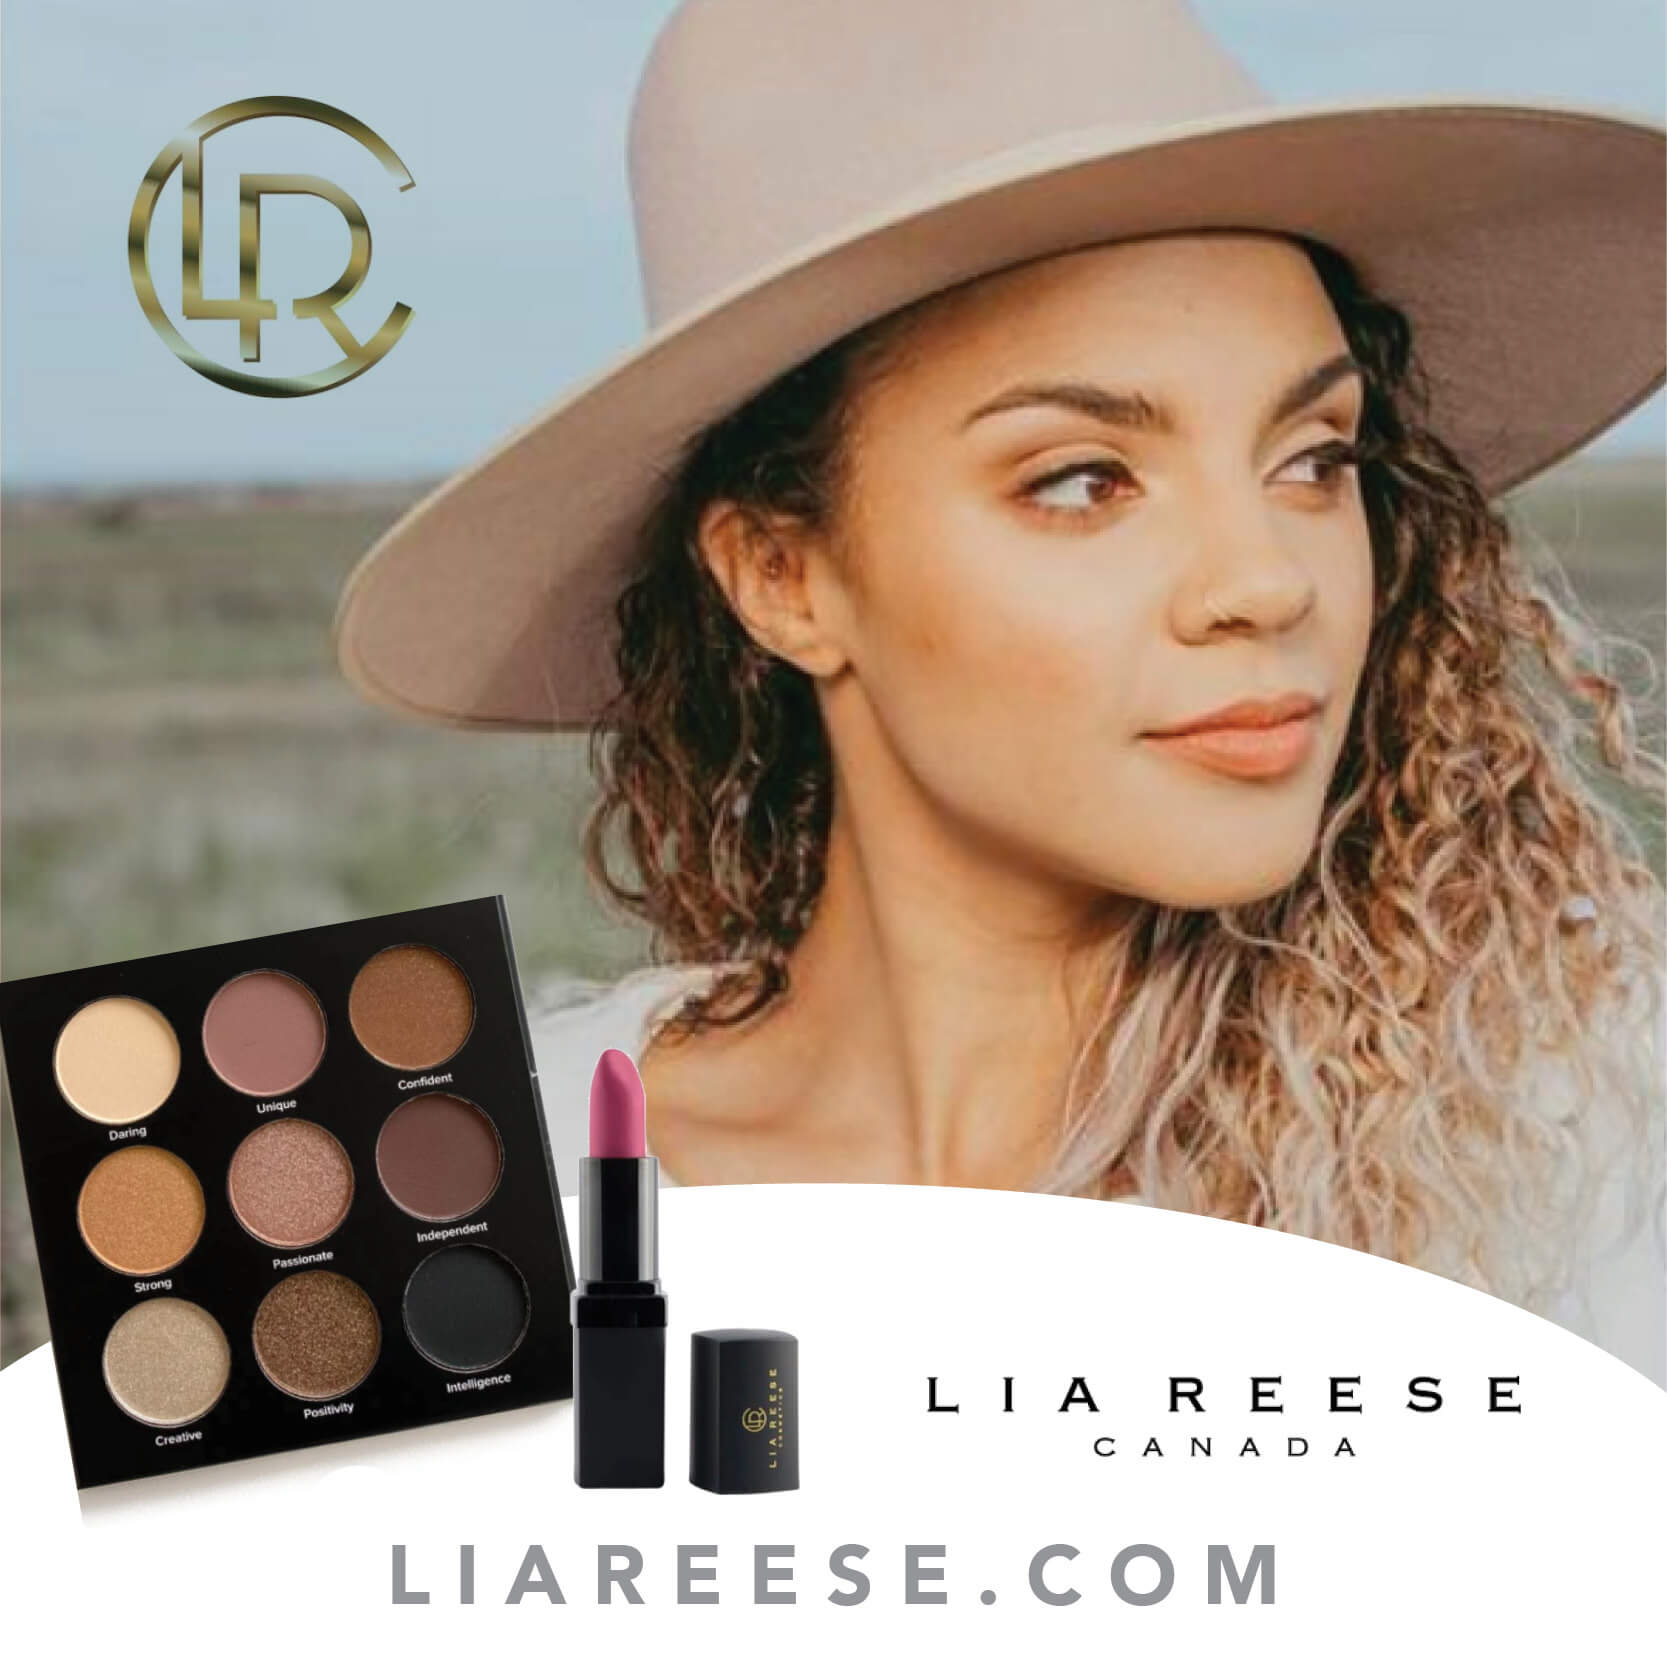 Closeup of a young woman modelling Lia Reese makeup